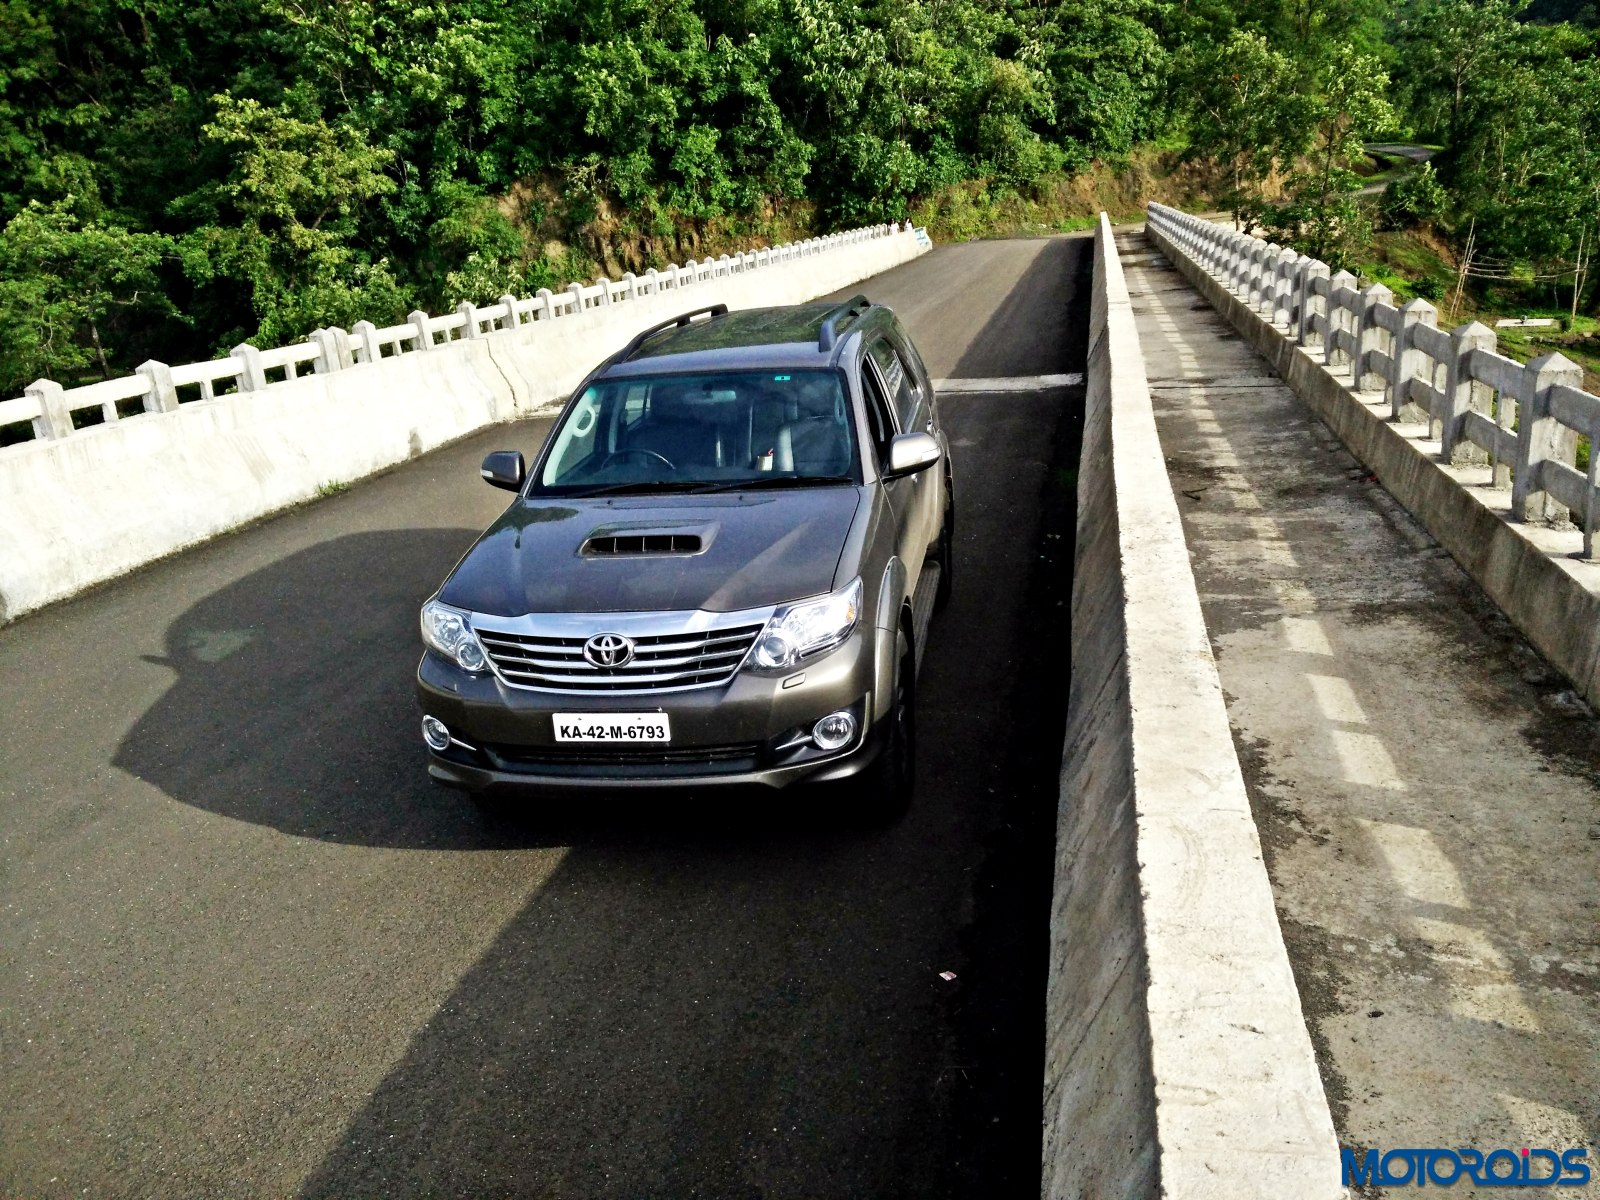 2015 Toyota Fortuner 3 0 4×4 AT review : Ageless Brawn